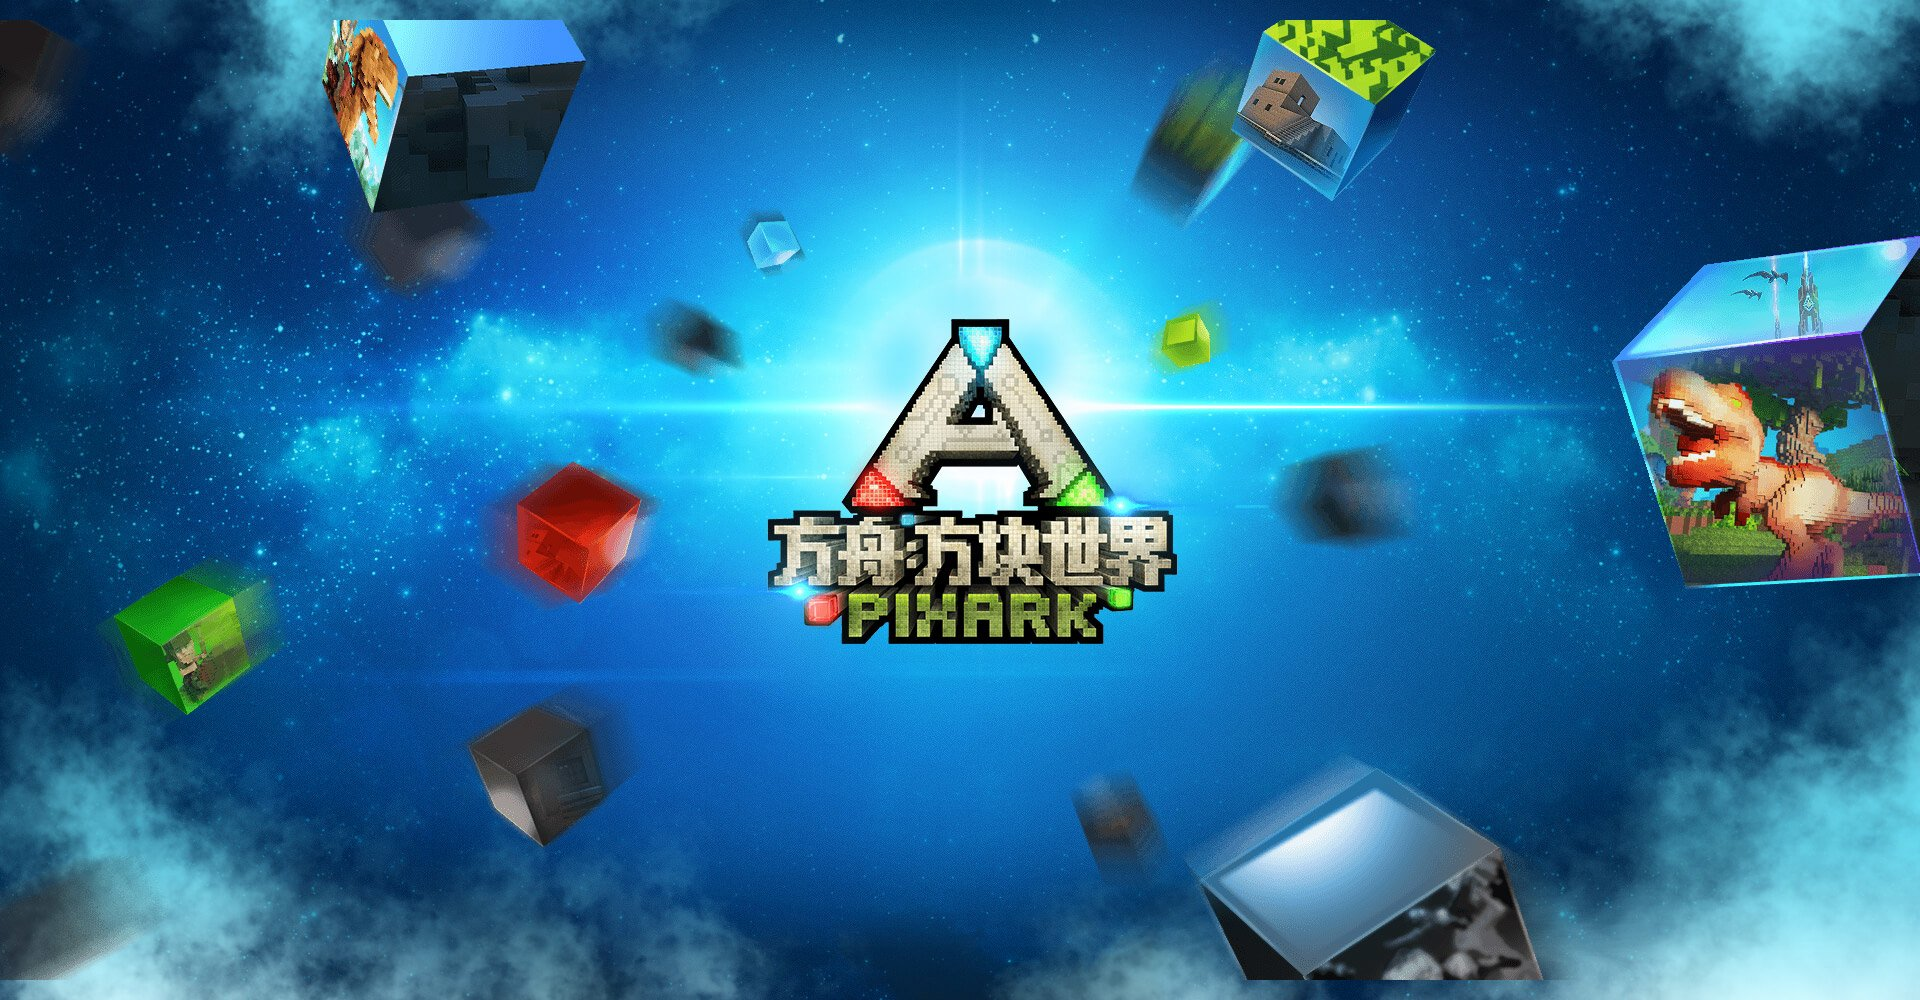 Video Game - PixARK  Wallpaper